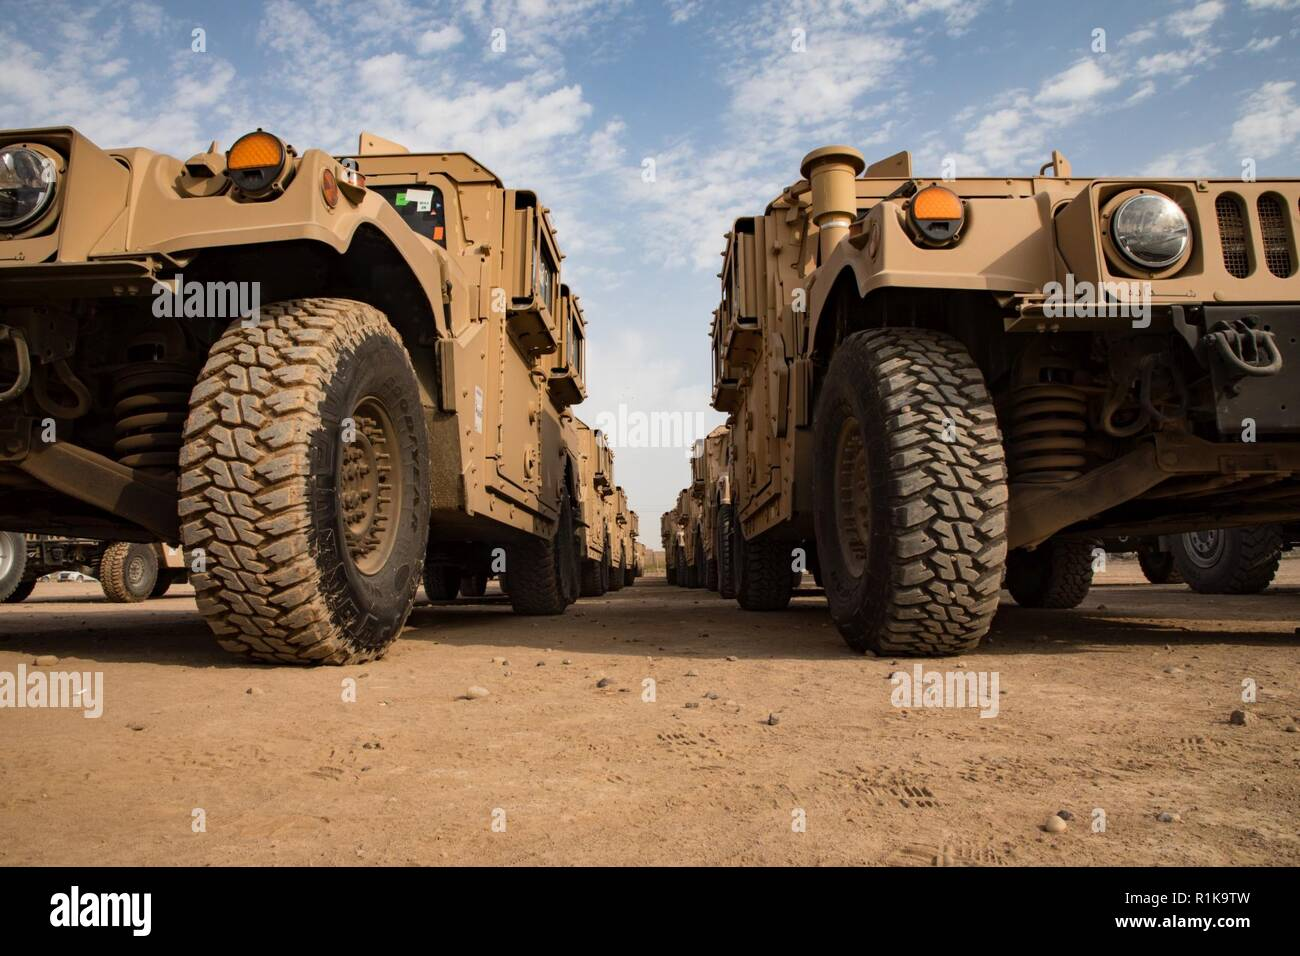 Isf Stock Photos & Isf Stock Images - Alamy